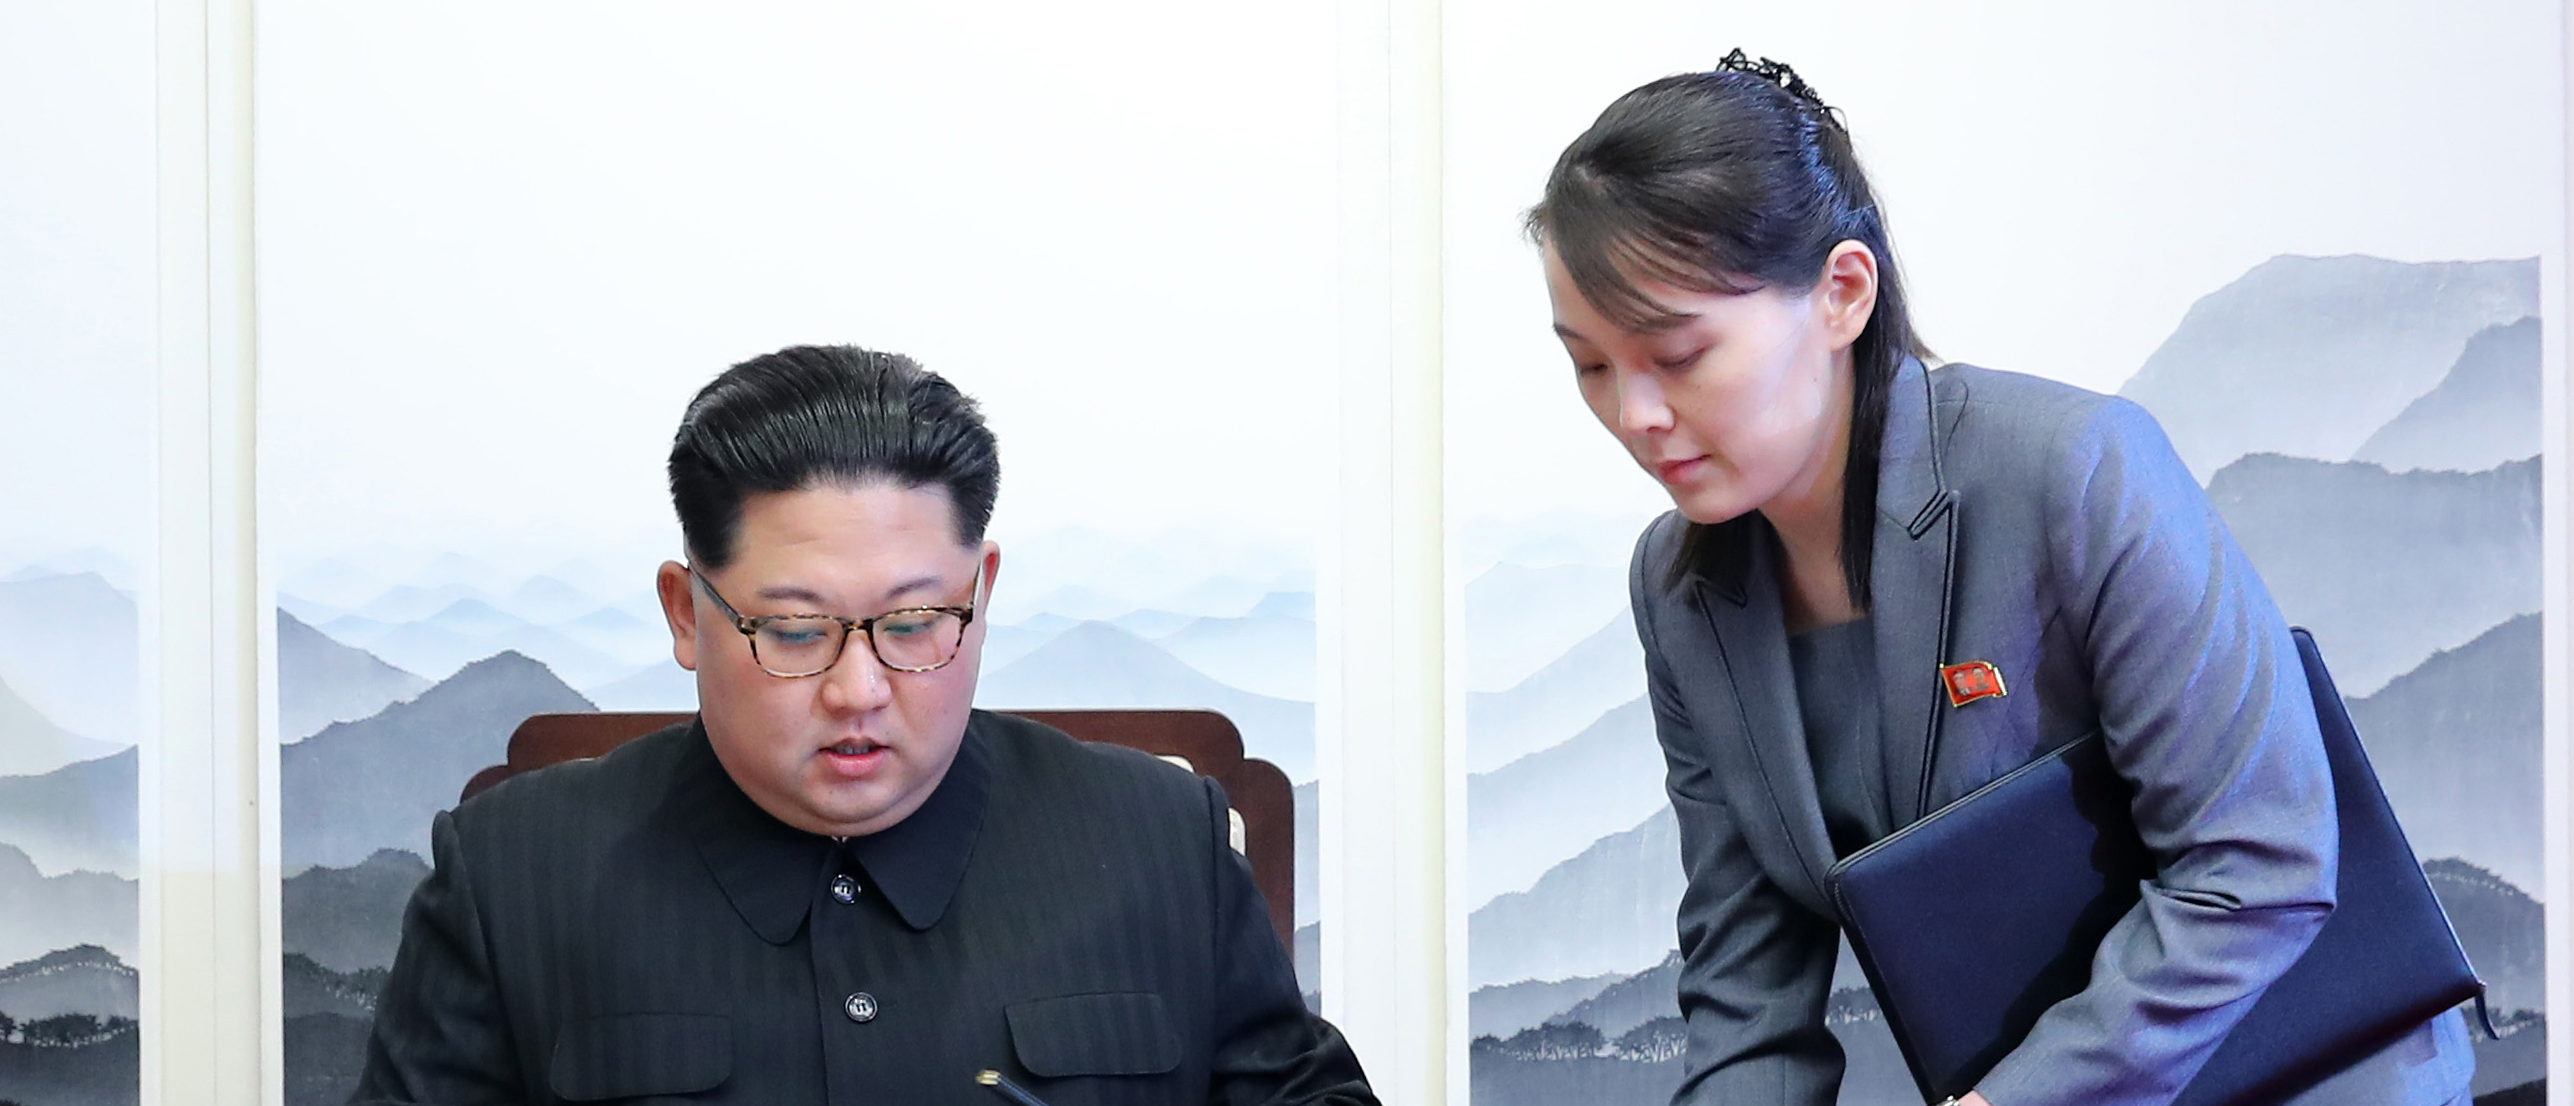 North Korea's leader Kim Jong Un (L) signs the guest book next to his sister Kim Yo Jong (R) during the Inter-Korean summit with South Korea's President Moon Jae-in at the Peace House building on the southern side of the truce village of Panmunjom on April 27, 2018. - North Korean leader Kim Jong Un and the South's President Moon Jae-in sat down to a historic summit on April 27 after shaking hands over the Military Demarcation Line that divides their countries in a gesture laden with symbolism. (Photo by Korea Summit Press Pool / Korea Summit Press Pool / AFP) (Photo credit should read KOREA SUMMIT PRESS POOL/AFP via Getty Images)